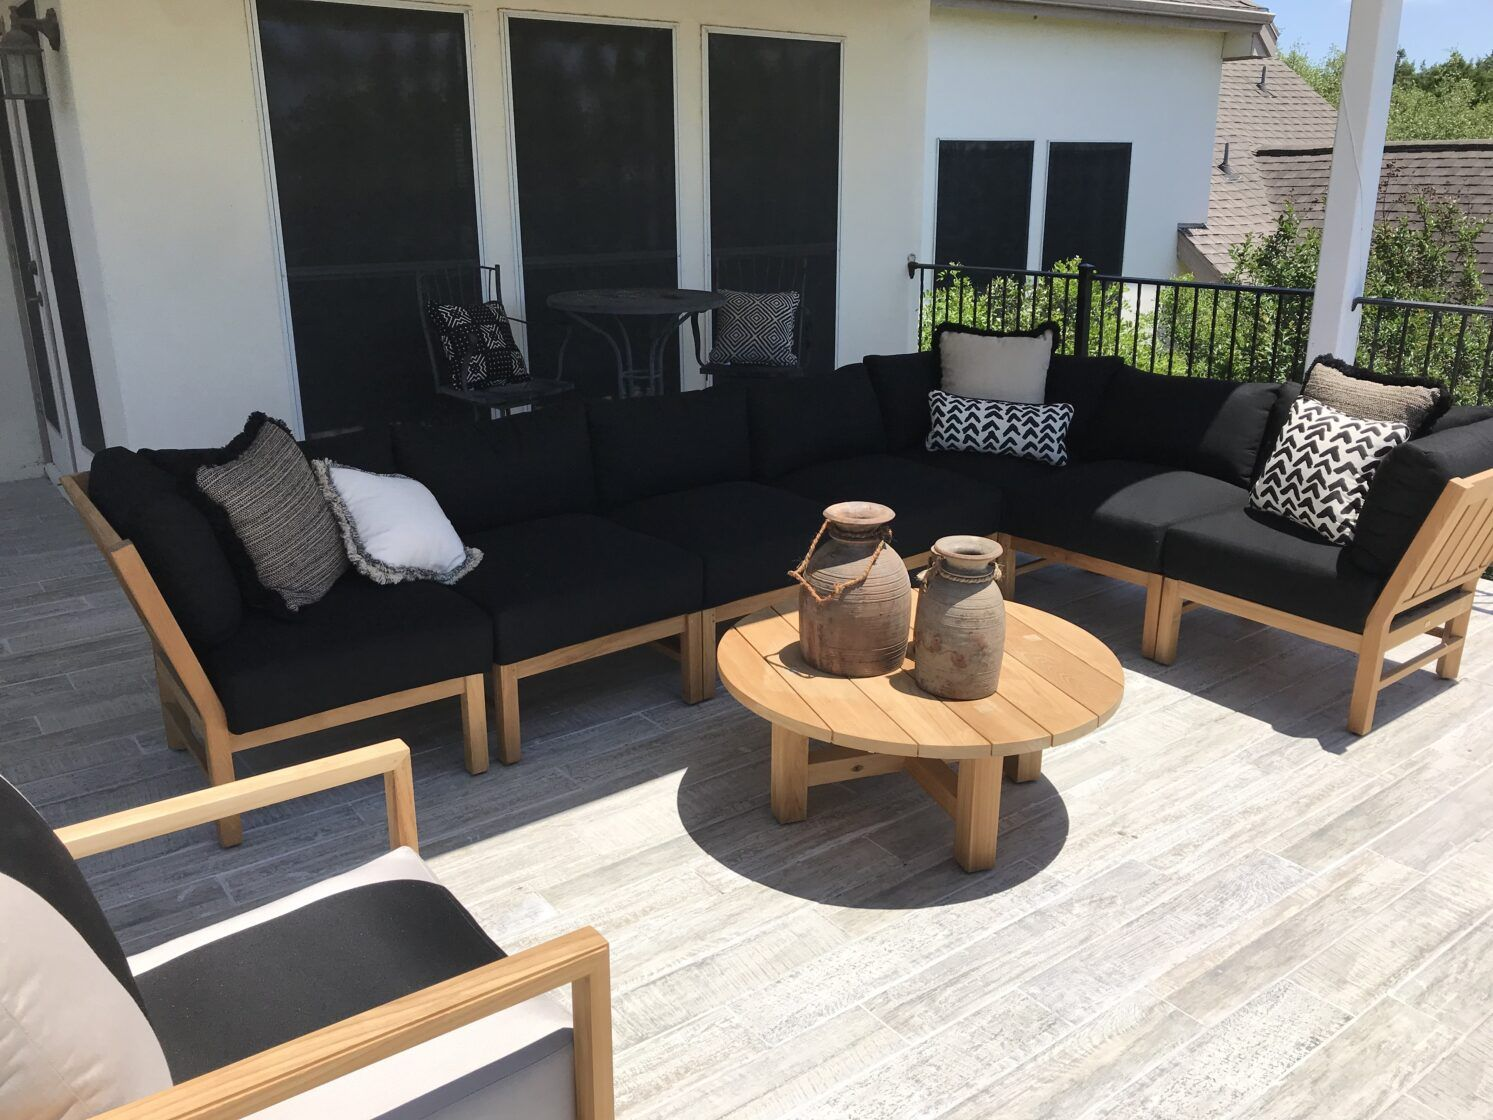 Pool Designs With Personality Summer Classics Home Patio Lounge Furniture Teak Patio Furniture Outdoor Furniture Design